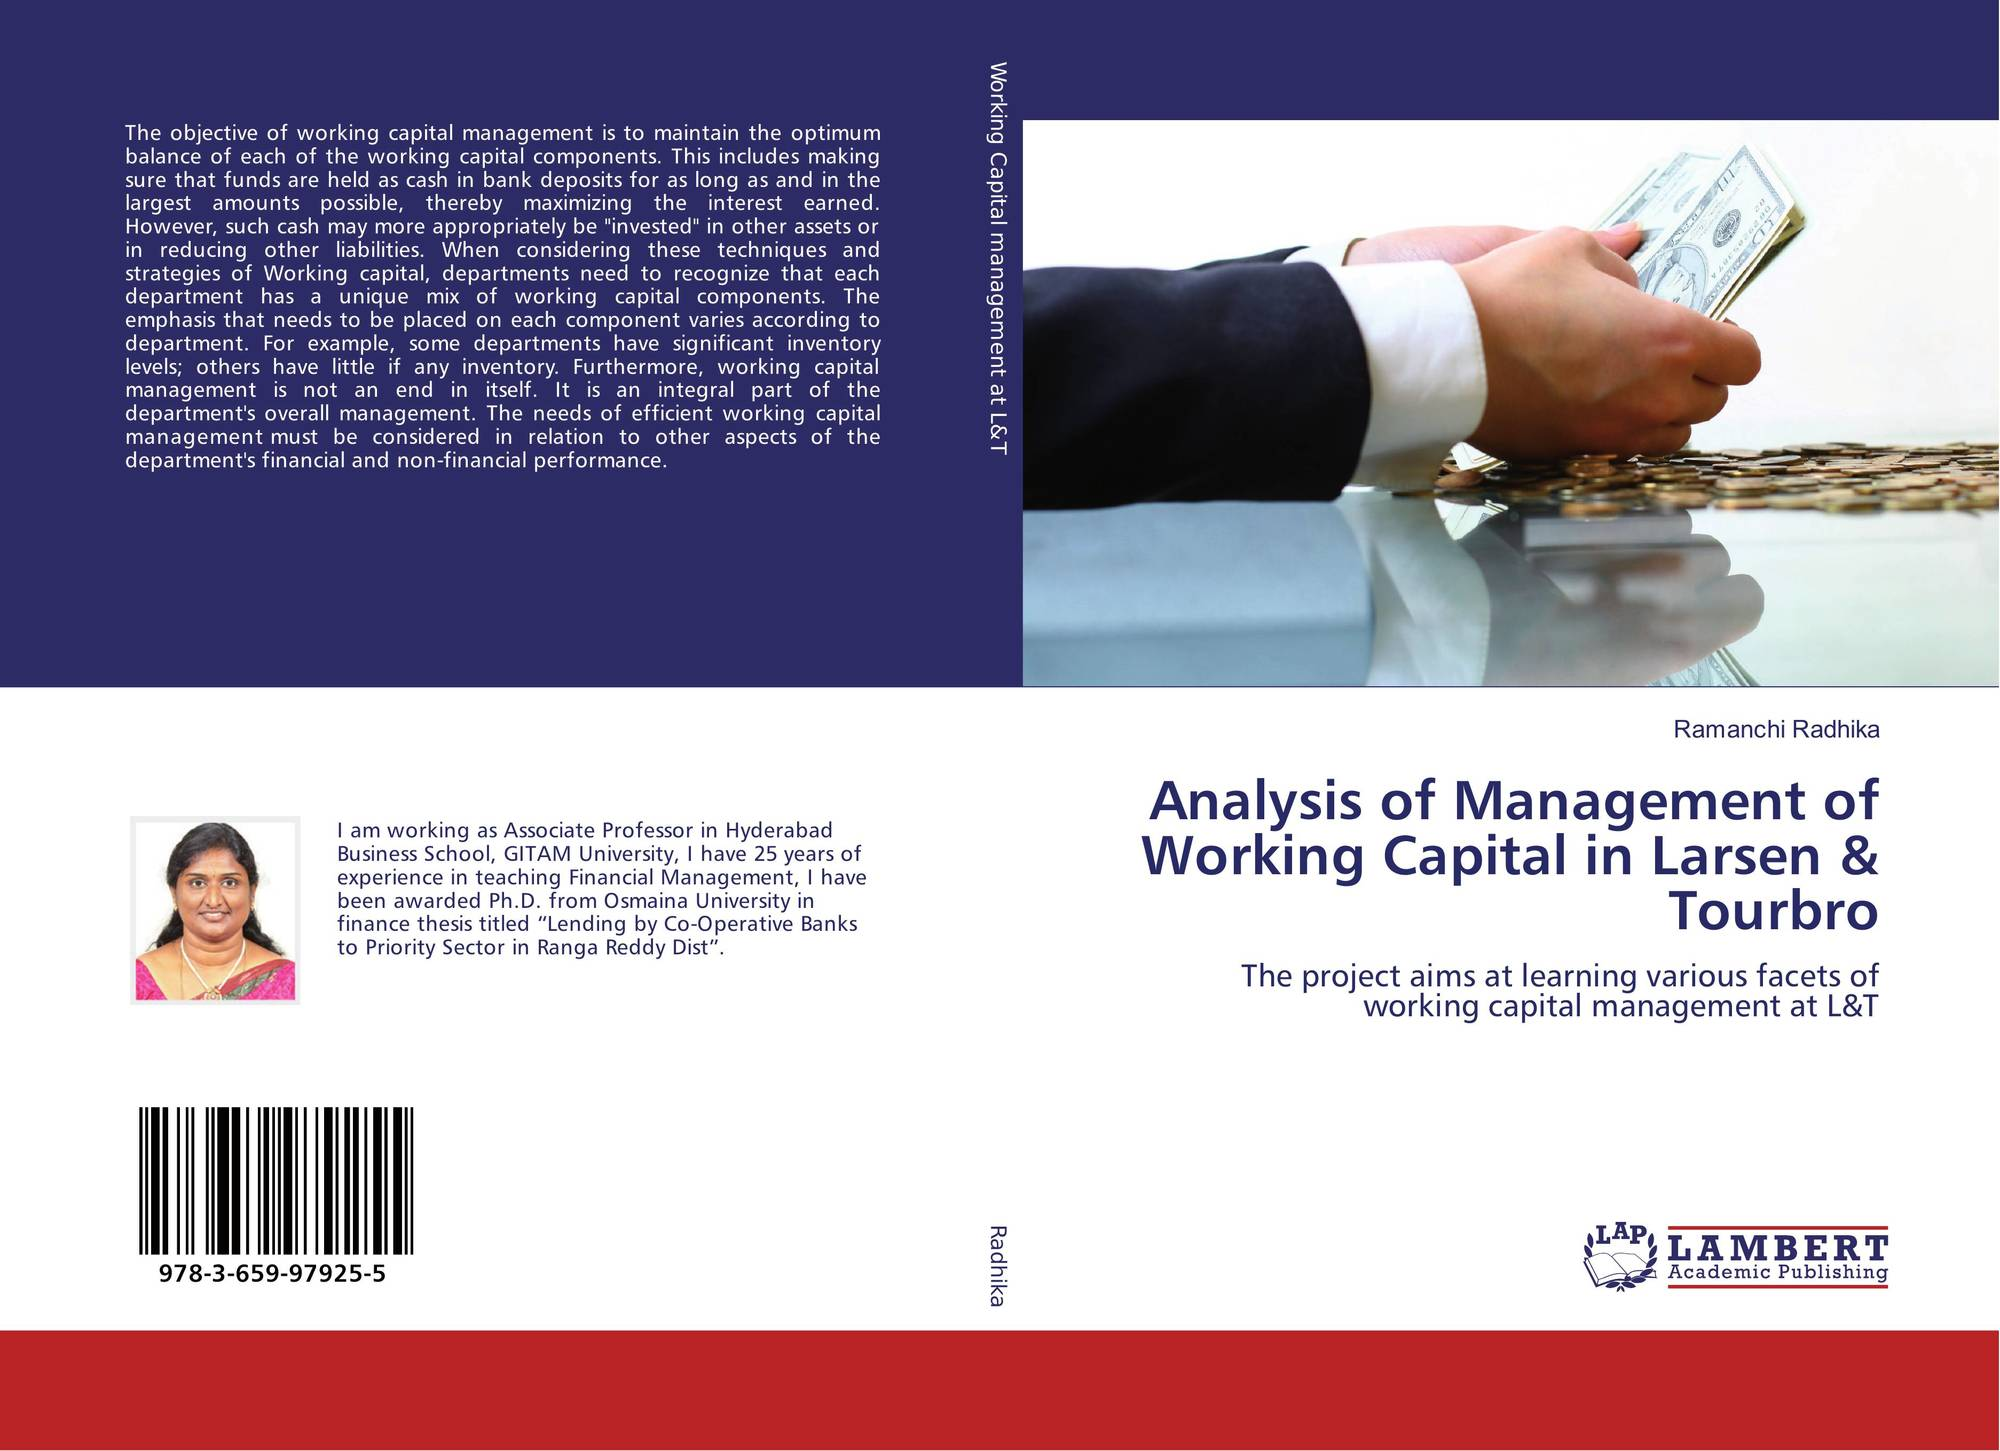 thesis on financial management in the public sector This thesis looks at risks faced by firms in the financial sector in norway, how these risks are managed and the systems of control used to mitigate them using dnb nor asa as a case study.